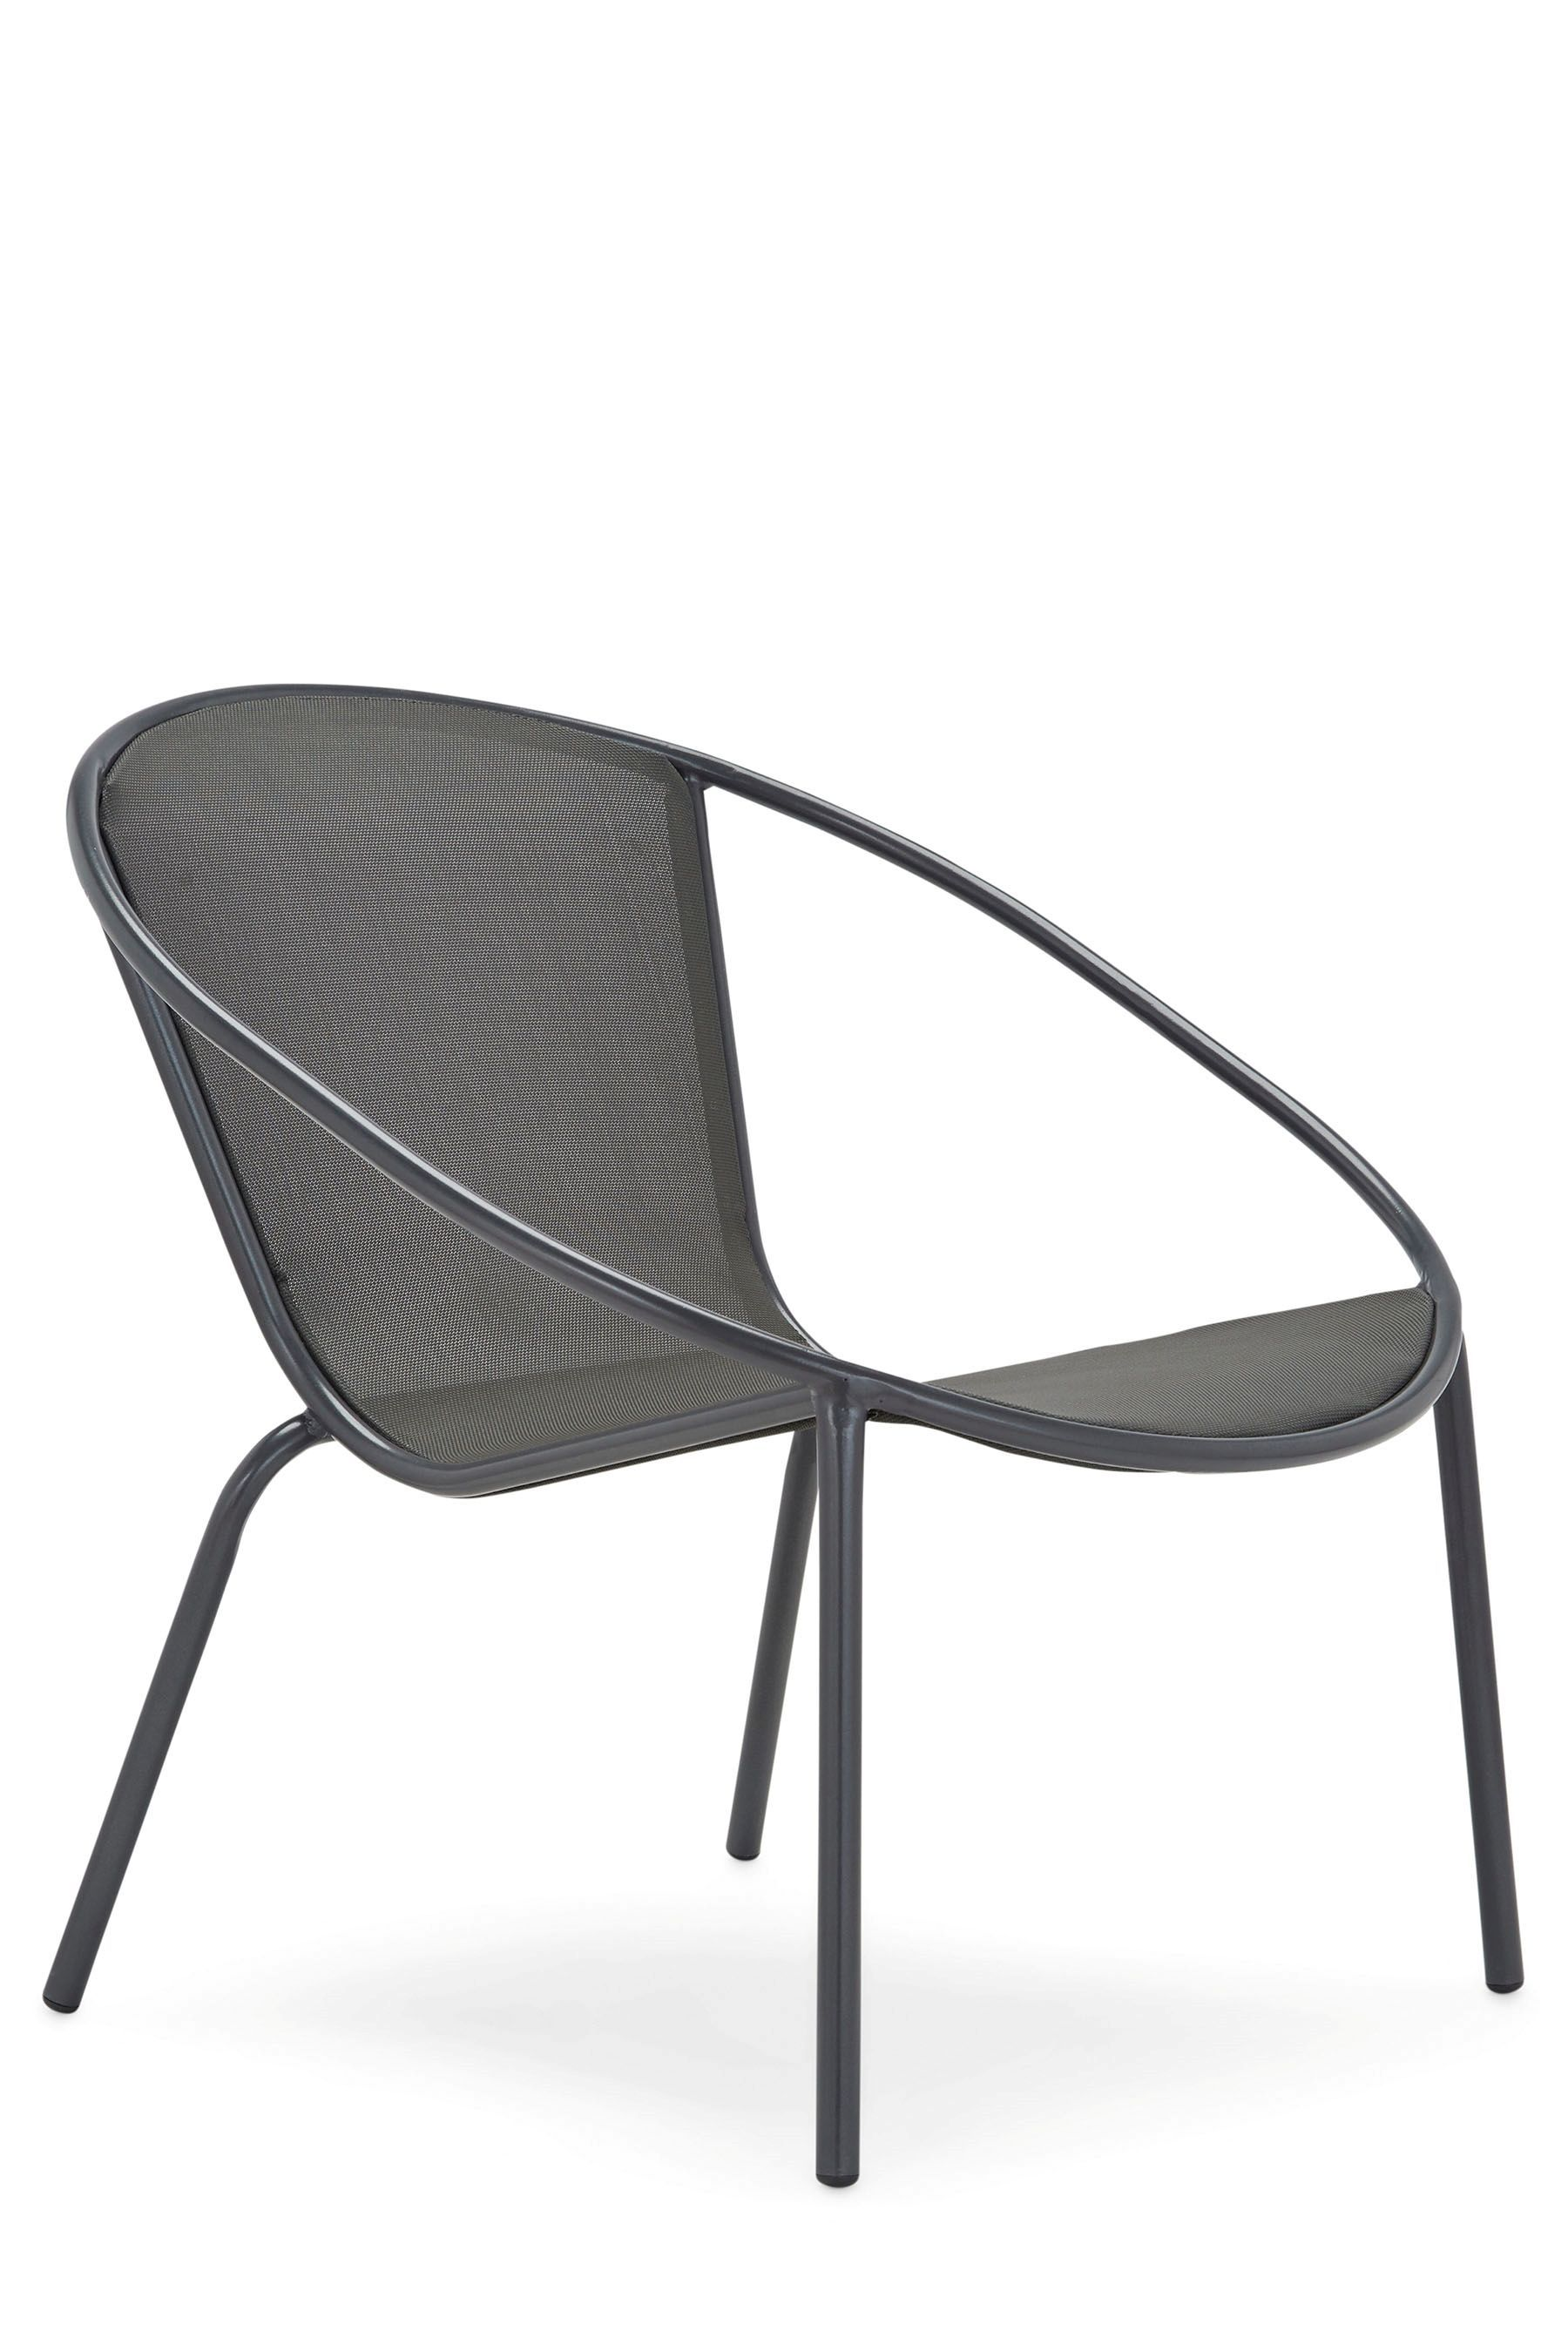 Modern Furniture Uk Online Bali Outdoor Chair Next Uk Online Shop Modern Outdoor